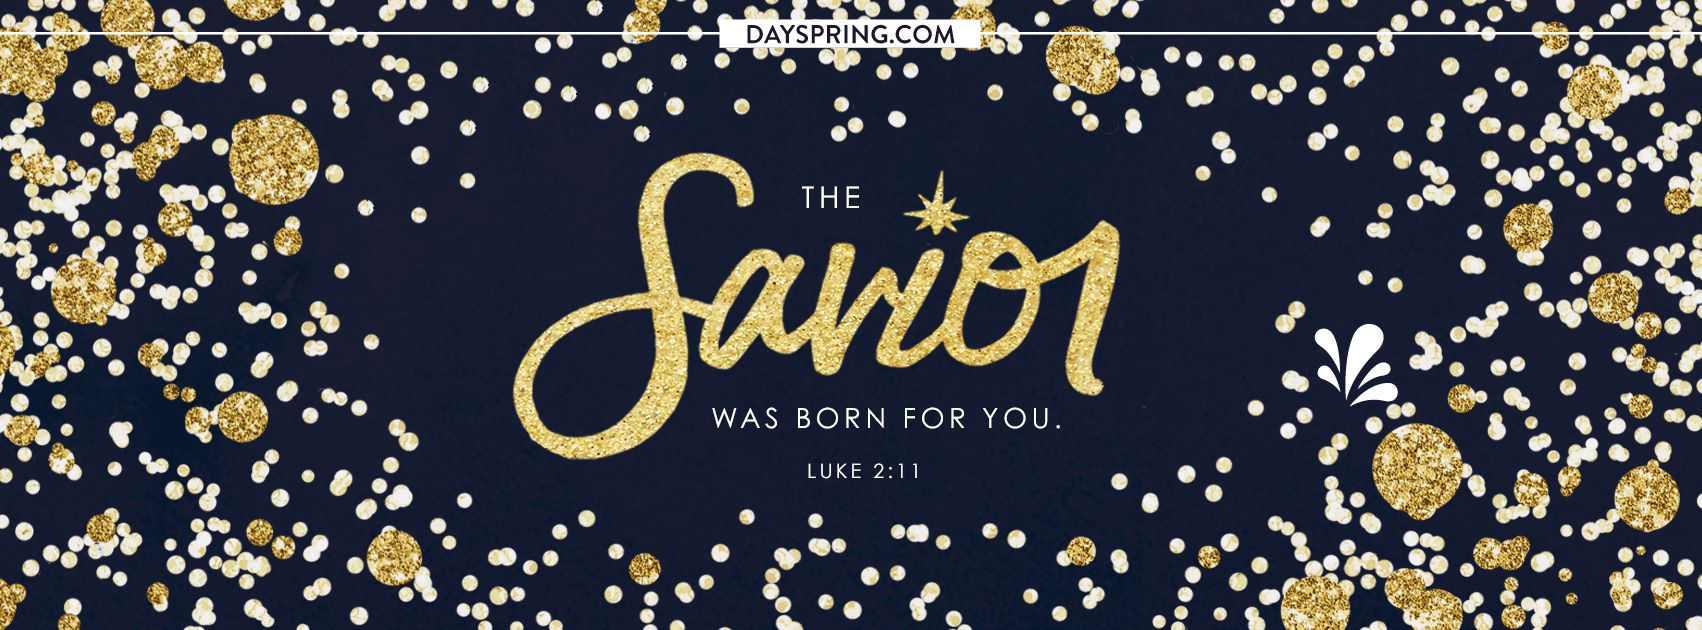 Facebook Cover Photos to Spice Up Your Profile for Christmas | DaySpring #christmascoverphotosfacebook